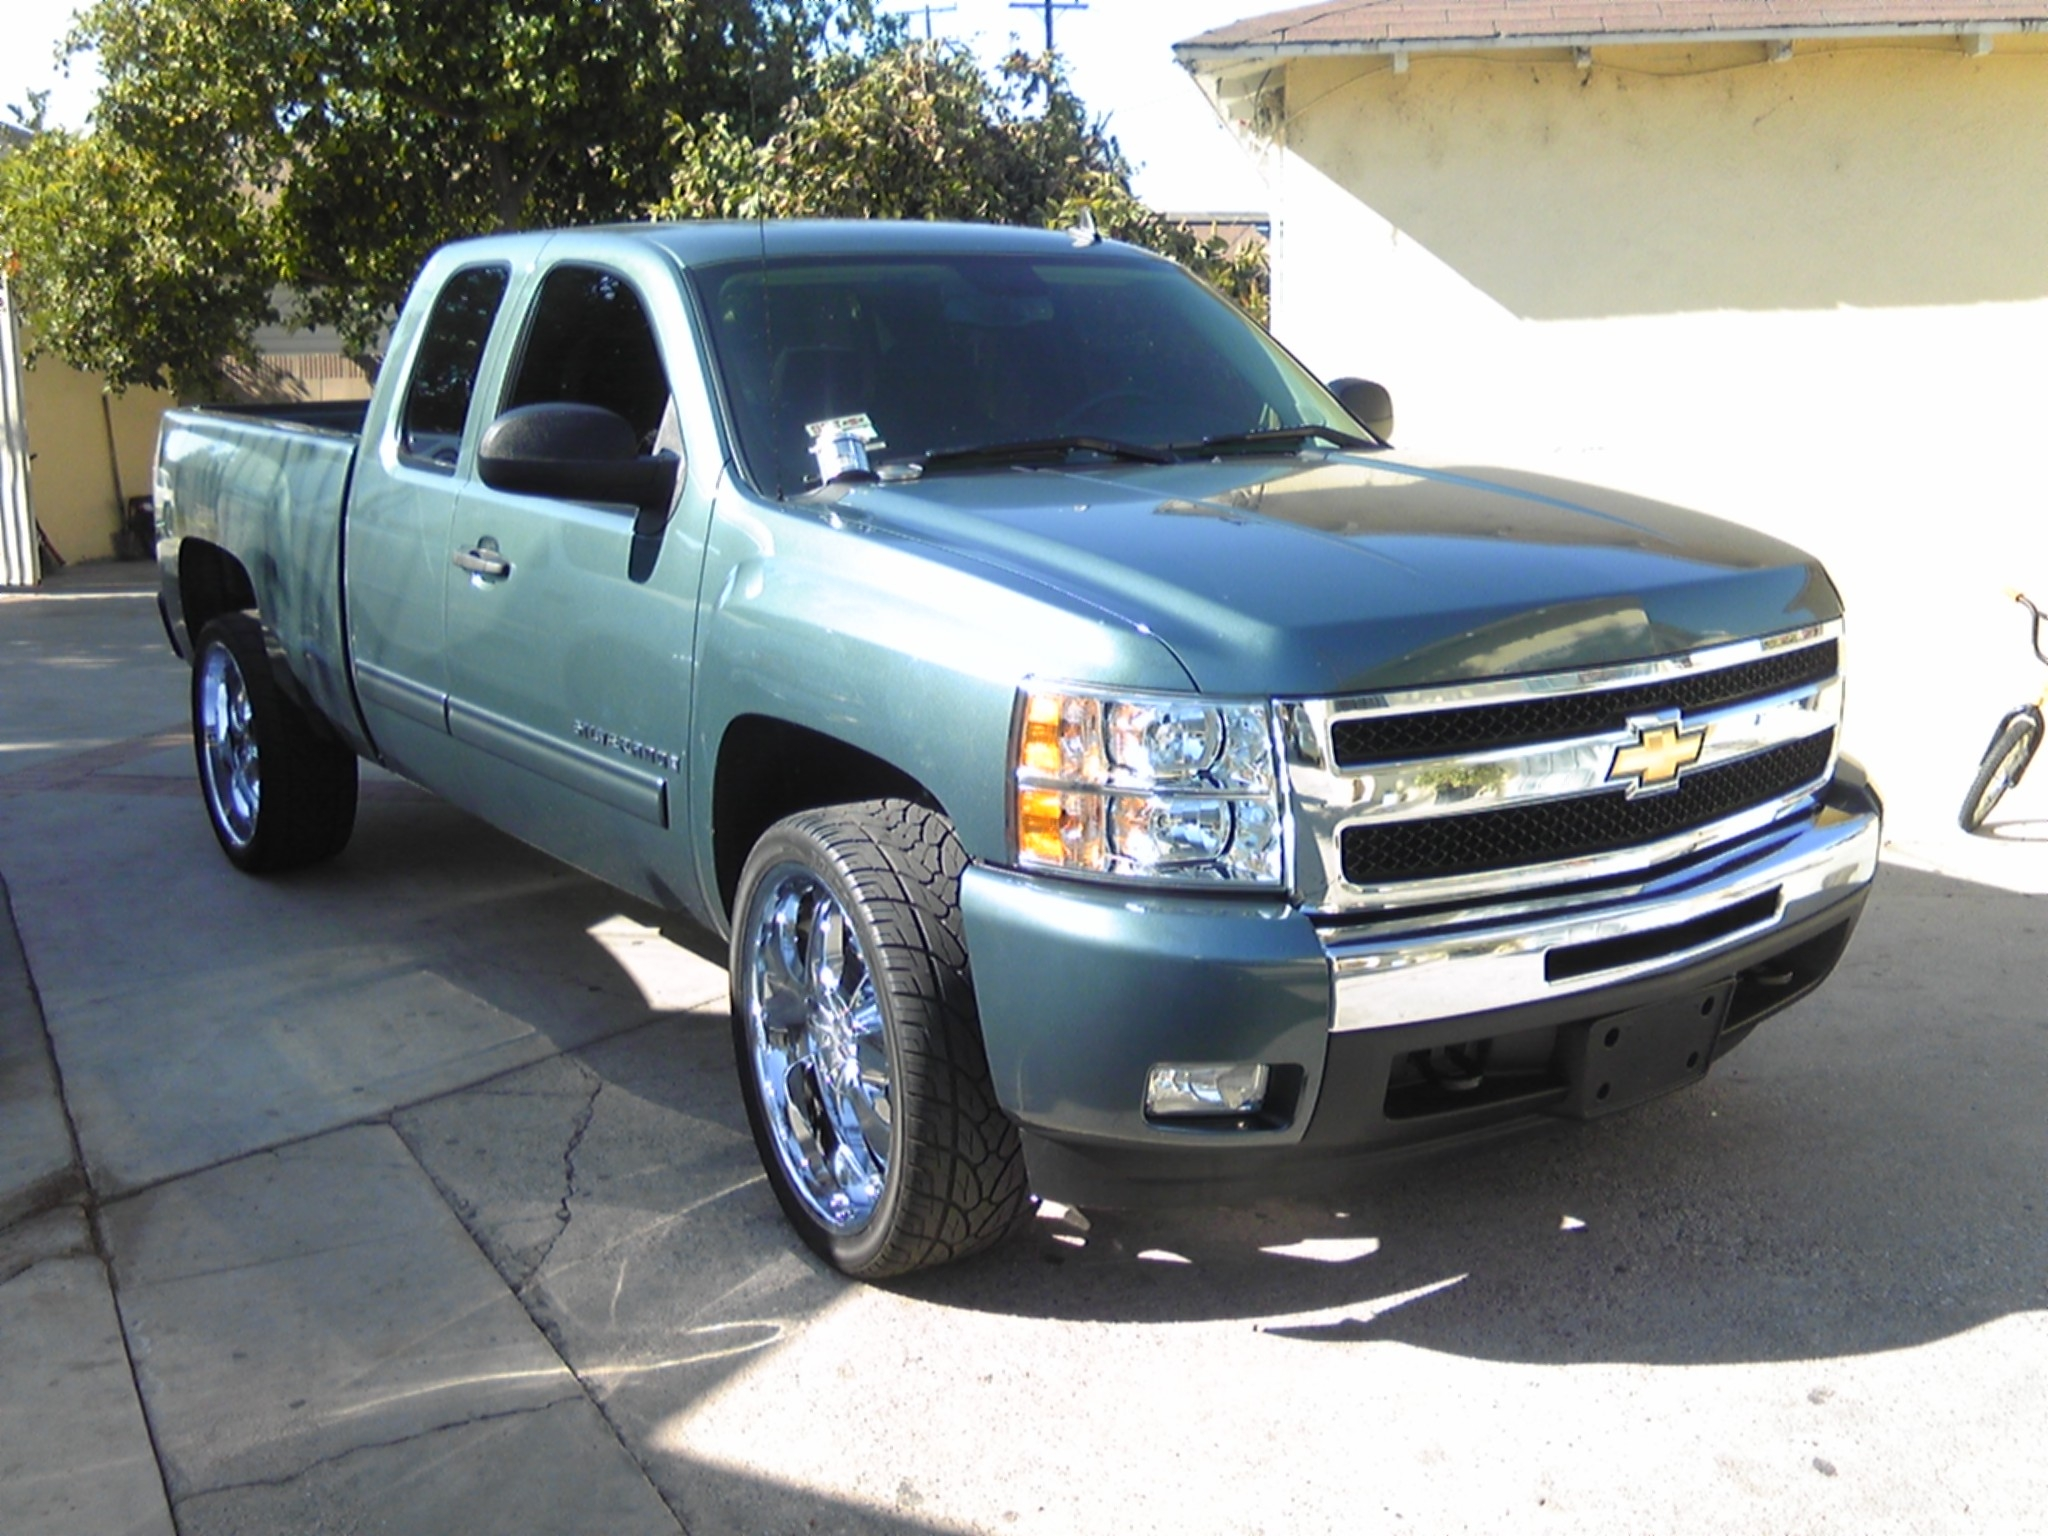 el aguacatero 2009 chevrolet silverado 1500 regular cab. Black Bedroom Furniture Sets. Home Design Ideas